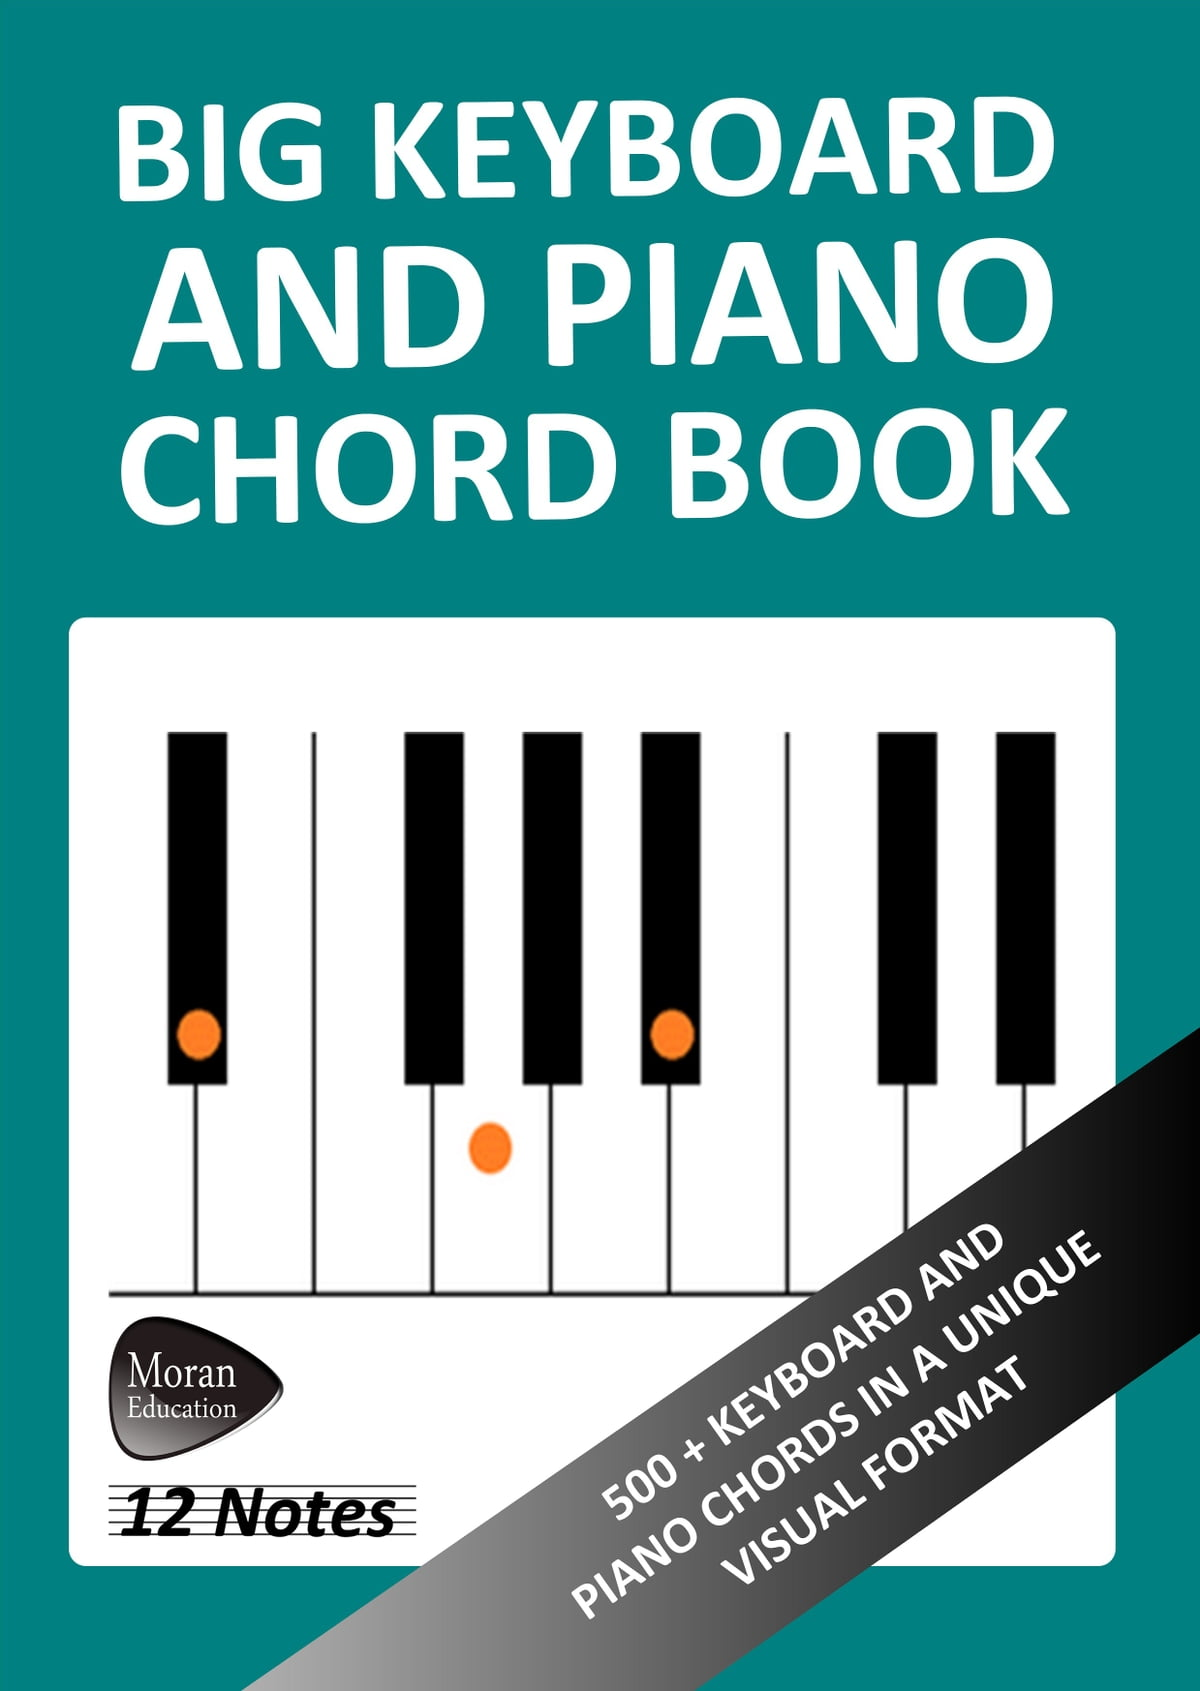 Big Keyboard And Piano Chord Book 500 Keyboard And Piano Chords In